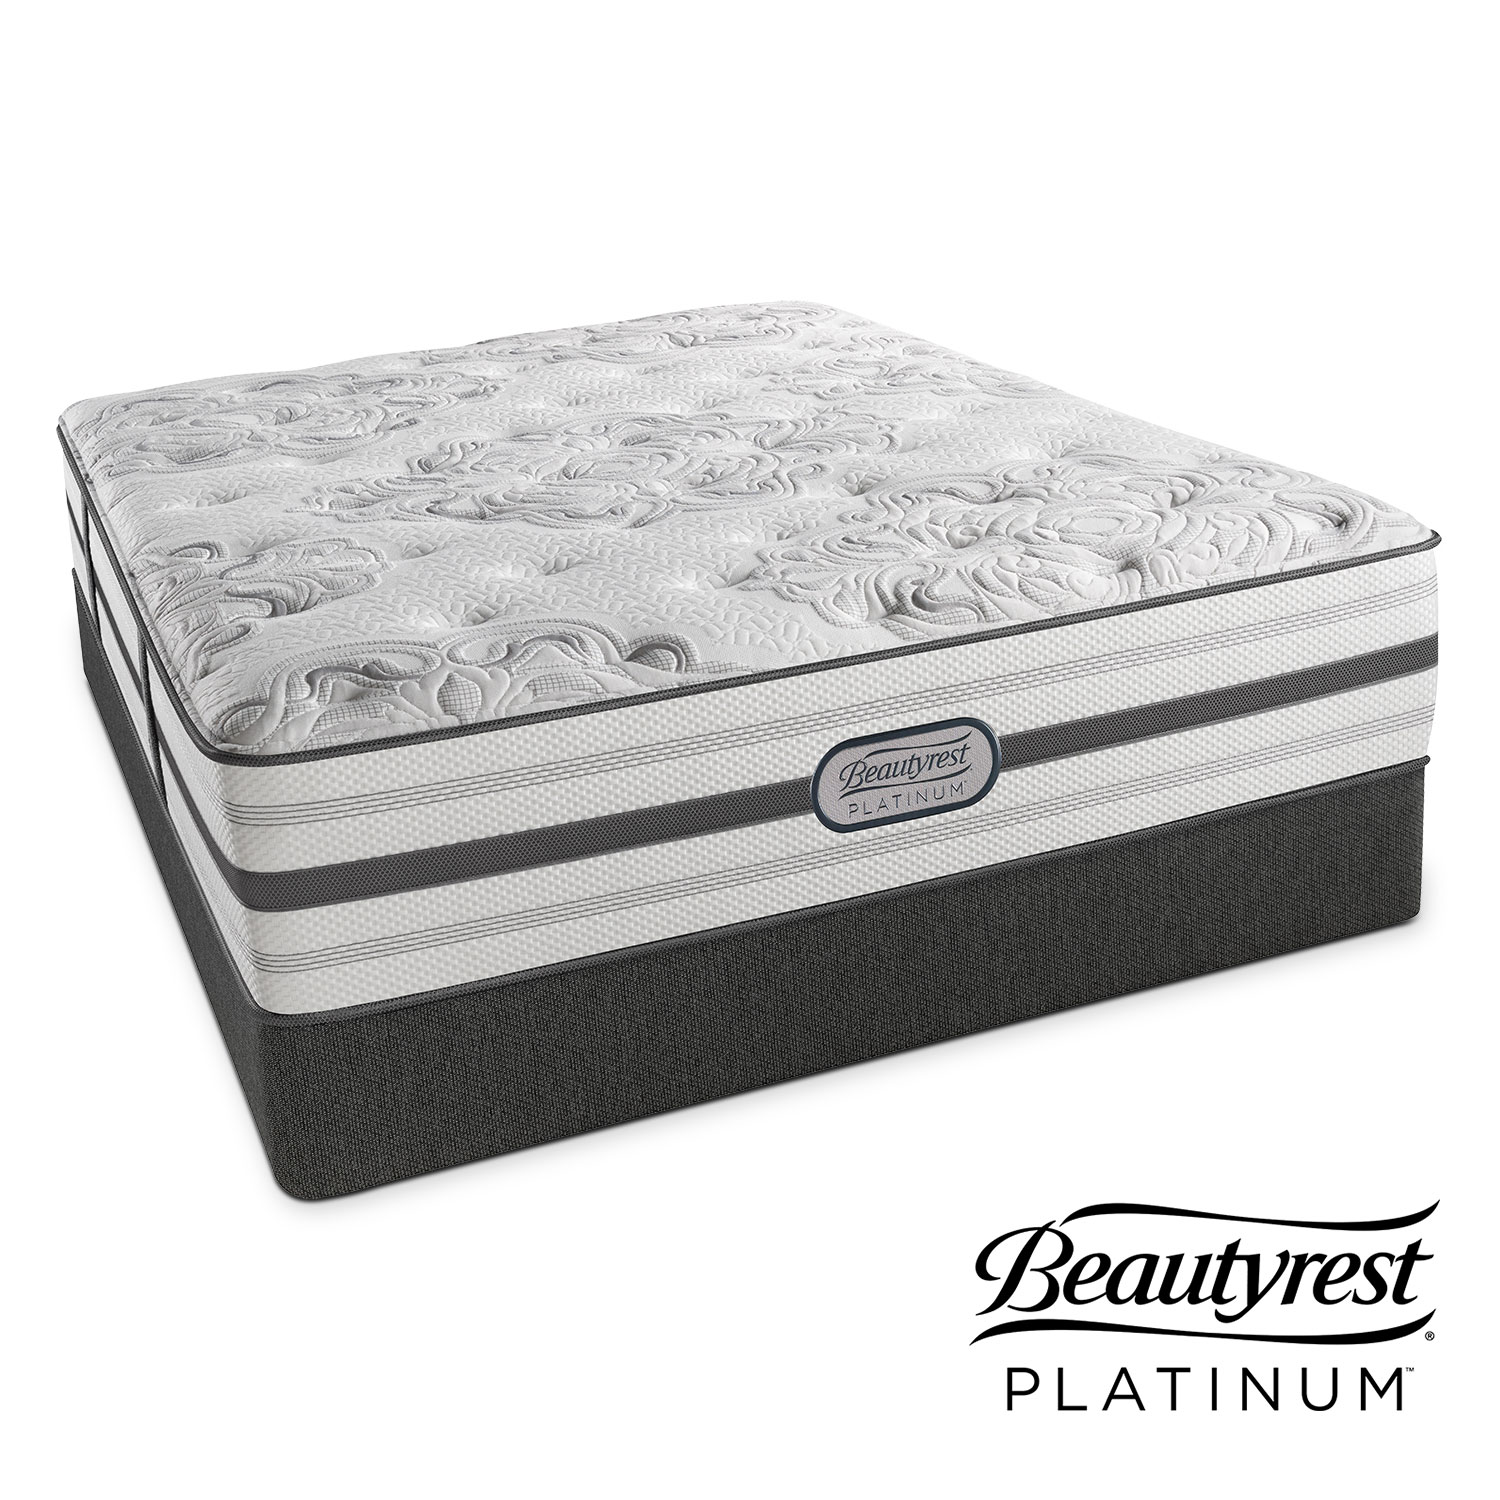 Mattresses and Bedding - Alexandria Twin XL Mattress/Foundation Set